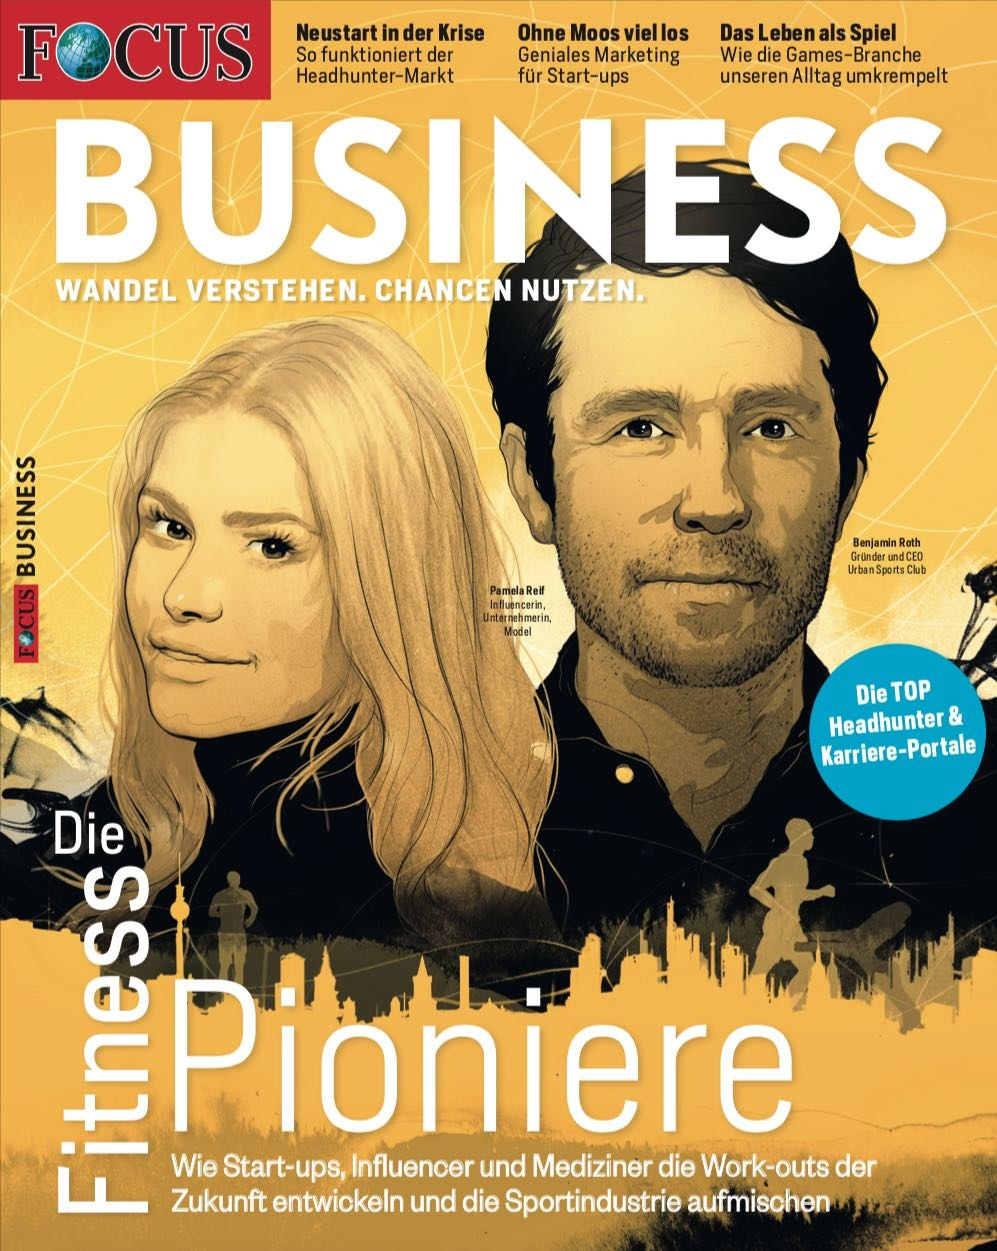 FOCUS-BUSINESS FOCUS Business - Gehalt & Karriere 2020